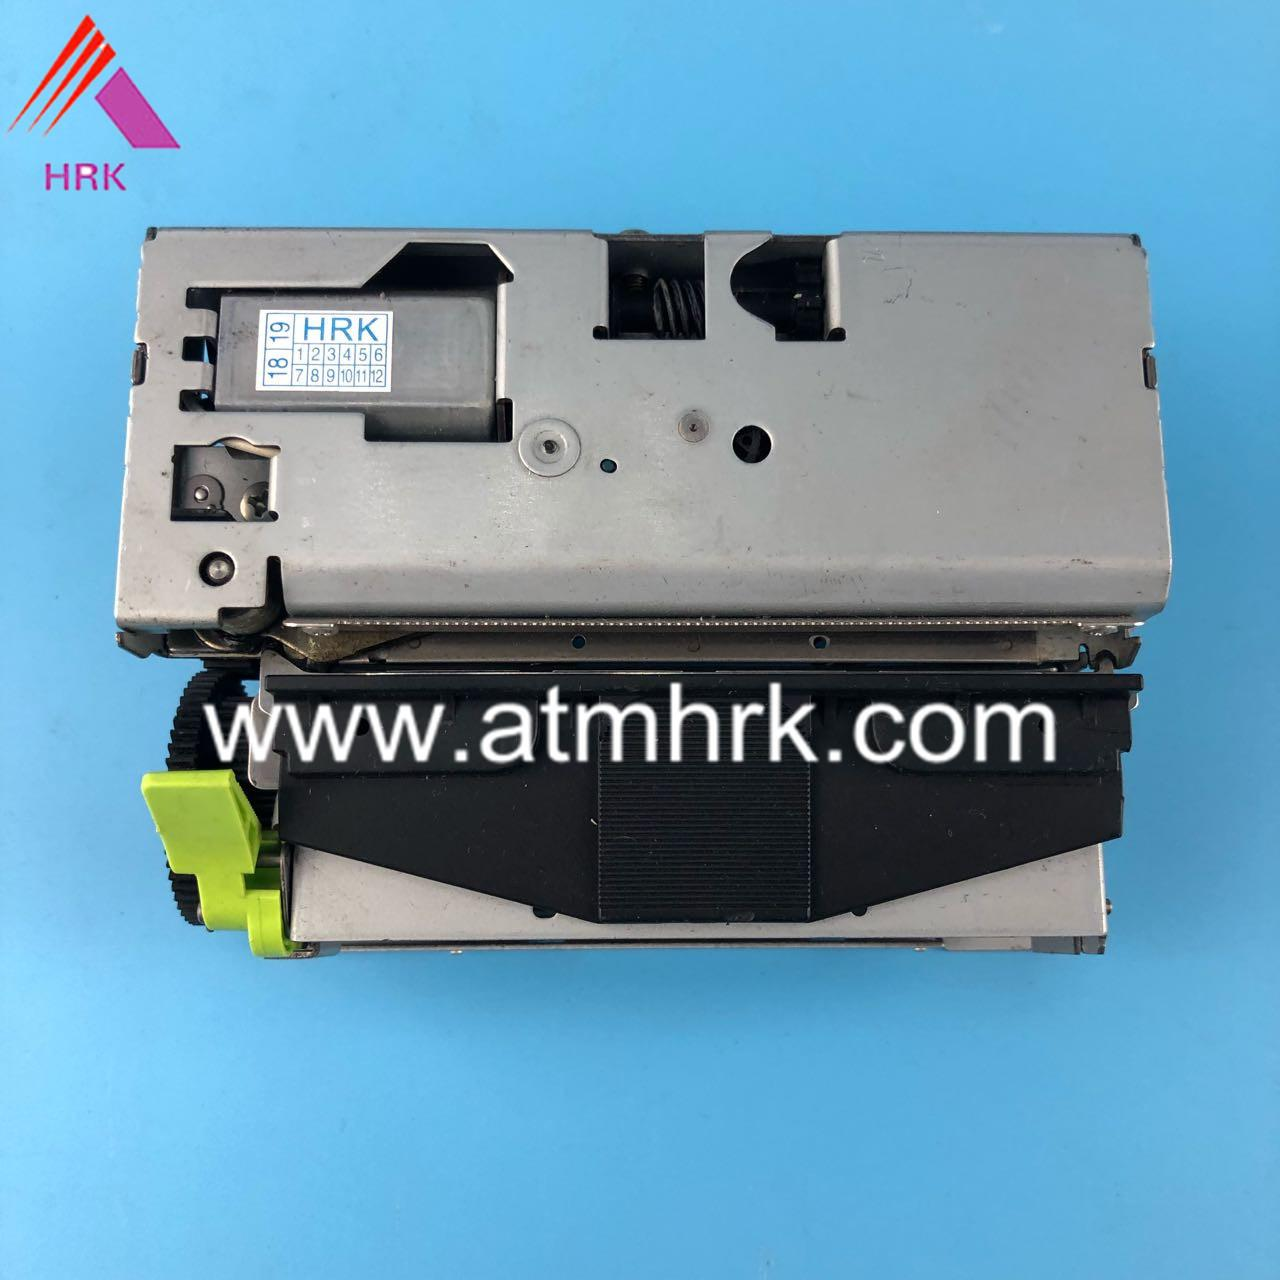 China Original New Atm Spare Parts Thermal Print Head For Grg Atm Machines on sale